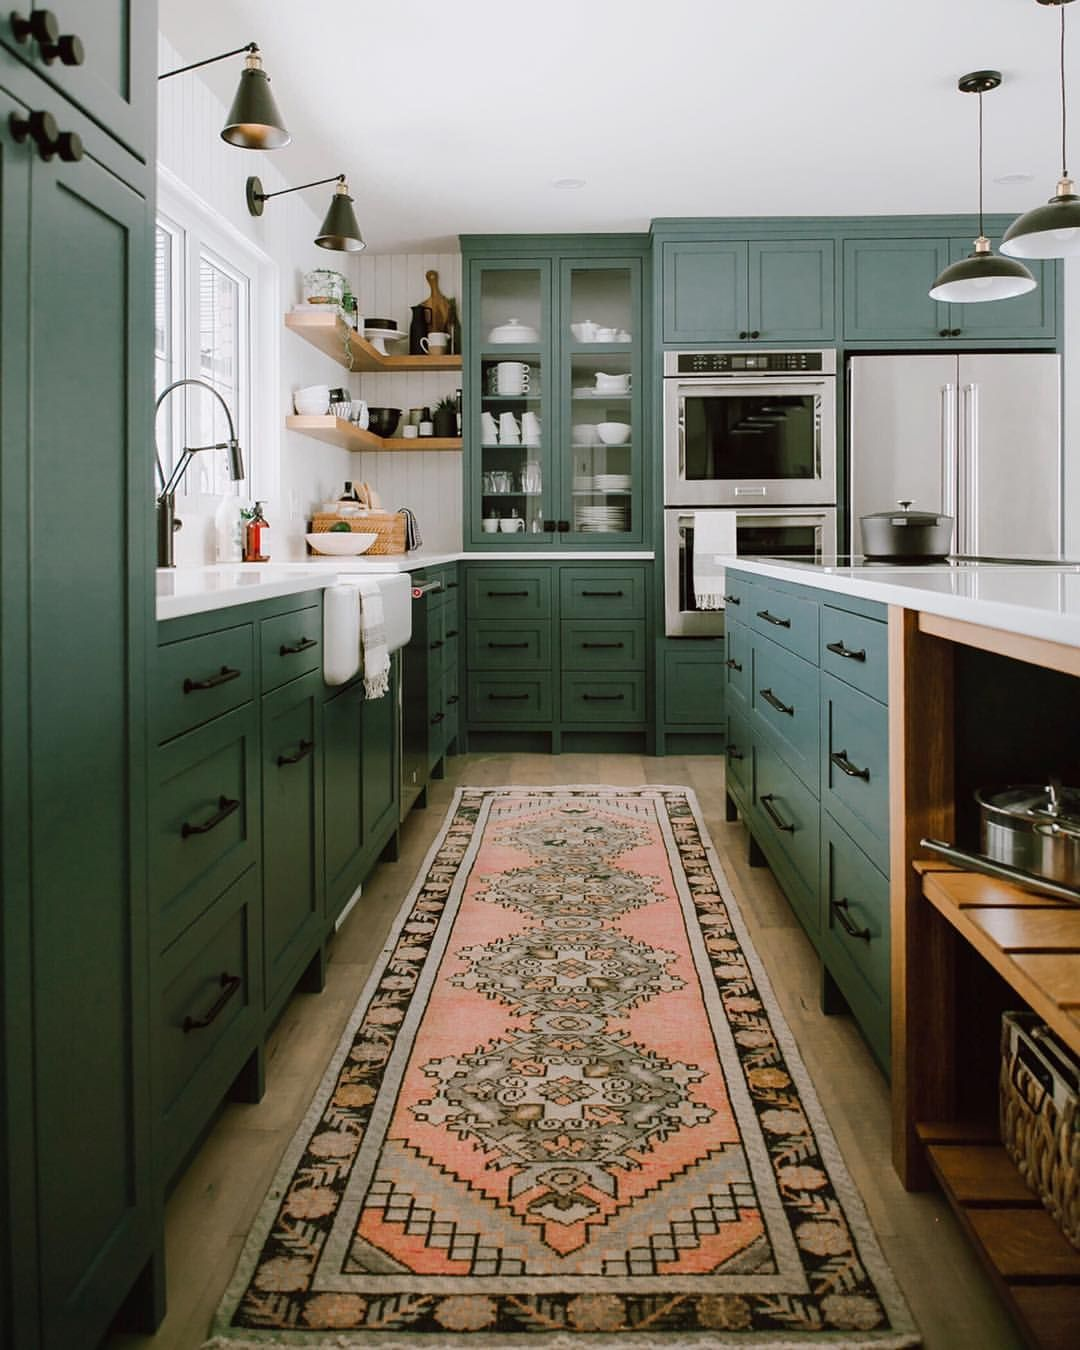 This Beautiful Sunny Wednesday Seems Like The Perfect Time To Start Sharing Jpdprojecthwy206 This Kitchen Lives Inside A Real Live 부엌 인테리어 디자인 원목주방 부엌 디자인